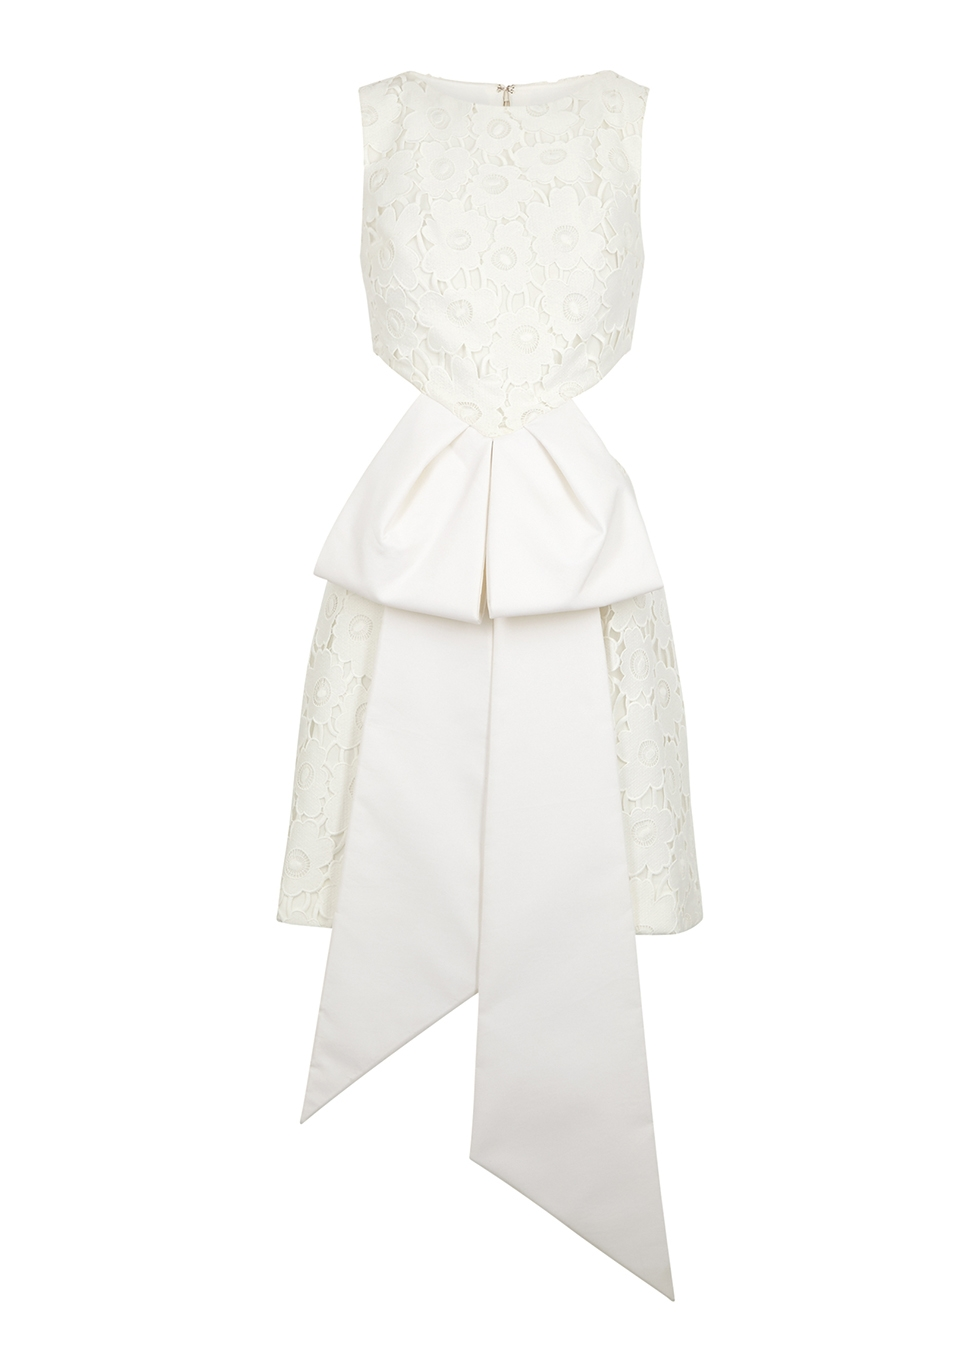 White cut-out guipure lace playsuit